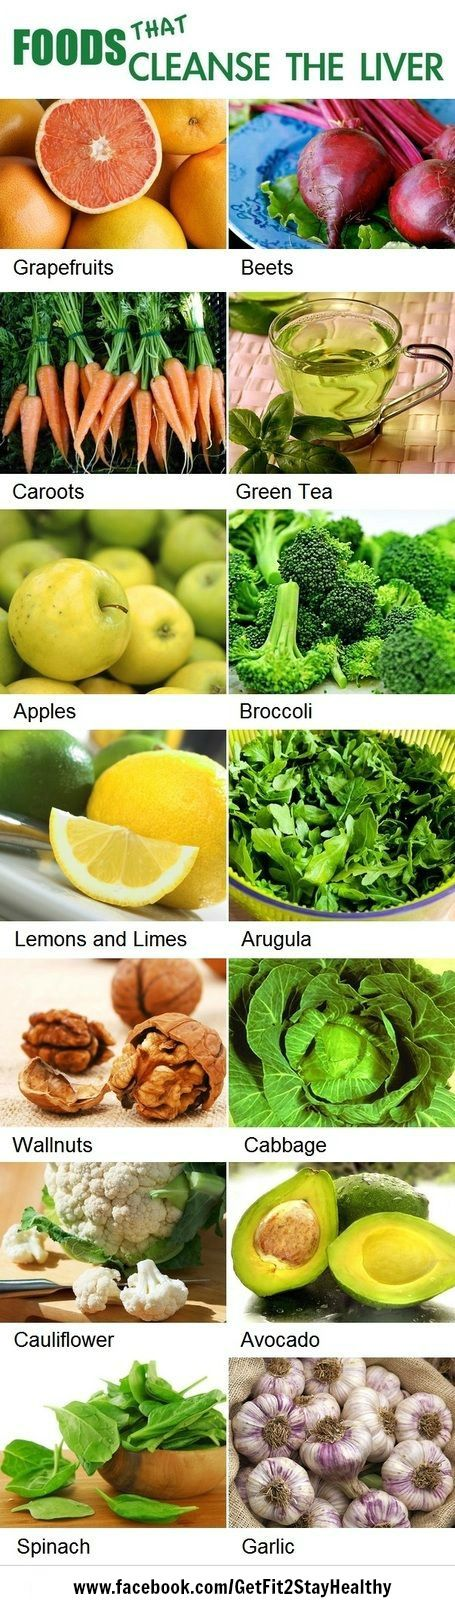 Foods that help to cleanse your liver. ~ Interested in a personal coach? Let's connect! Send an email to ginny.toll@gmail.com and let me know a little about your goals and lifestyle! We'll work together to pick the right program for you! #GetFit2StayHealthy #Motivation #HealthTips http://facebook.com/GetFit2StayHealthy